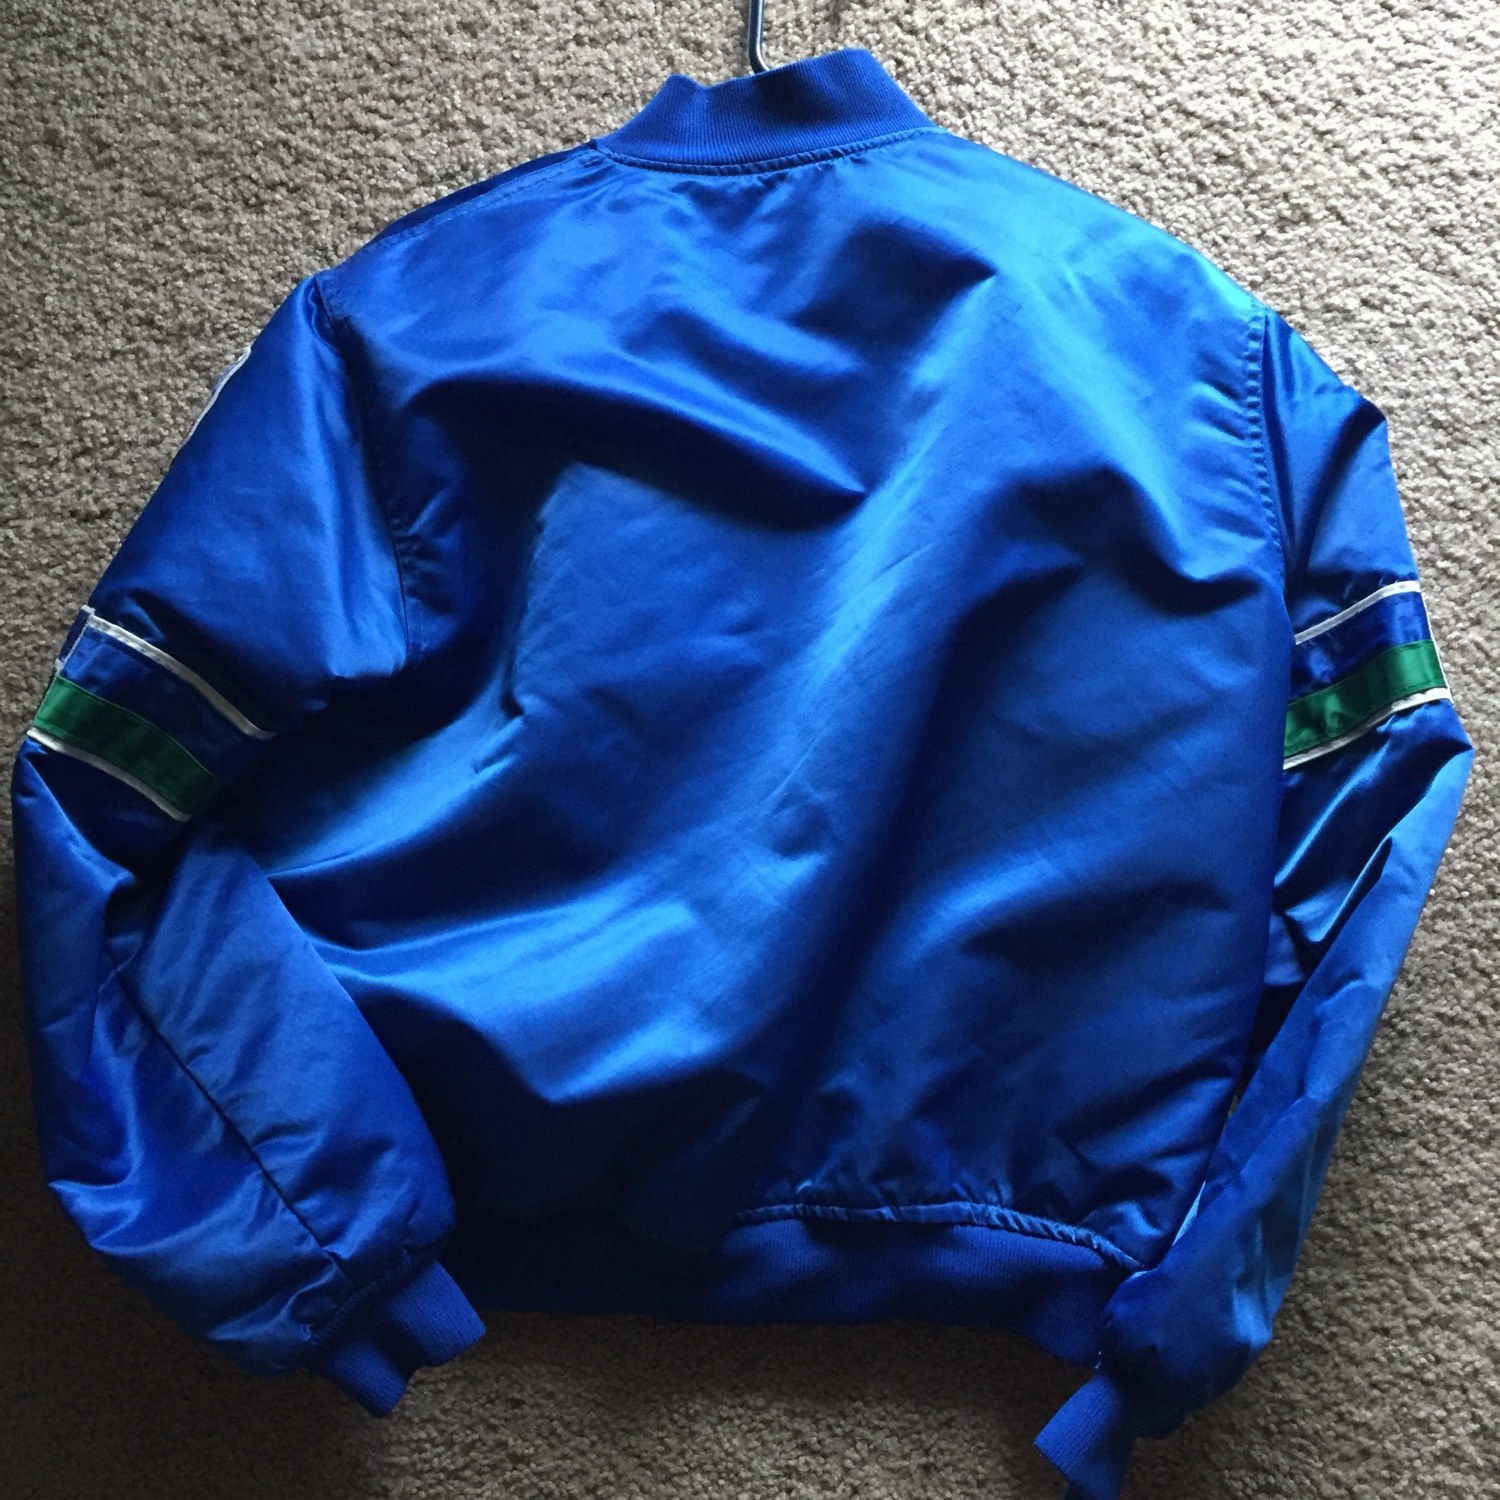 low priced 952a8 d8306 Seattle Seahawks 80'S Satin Starter Jacket